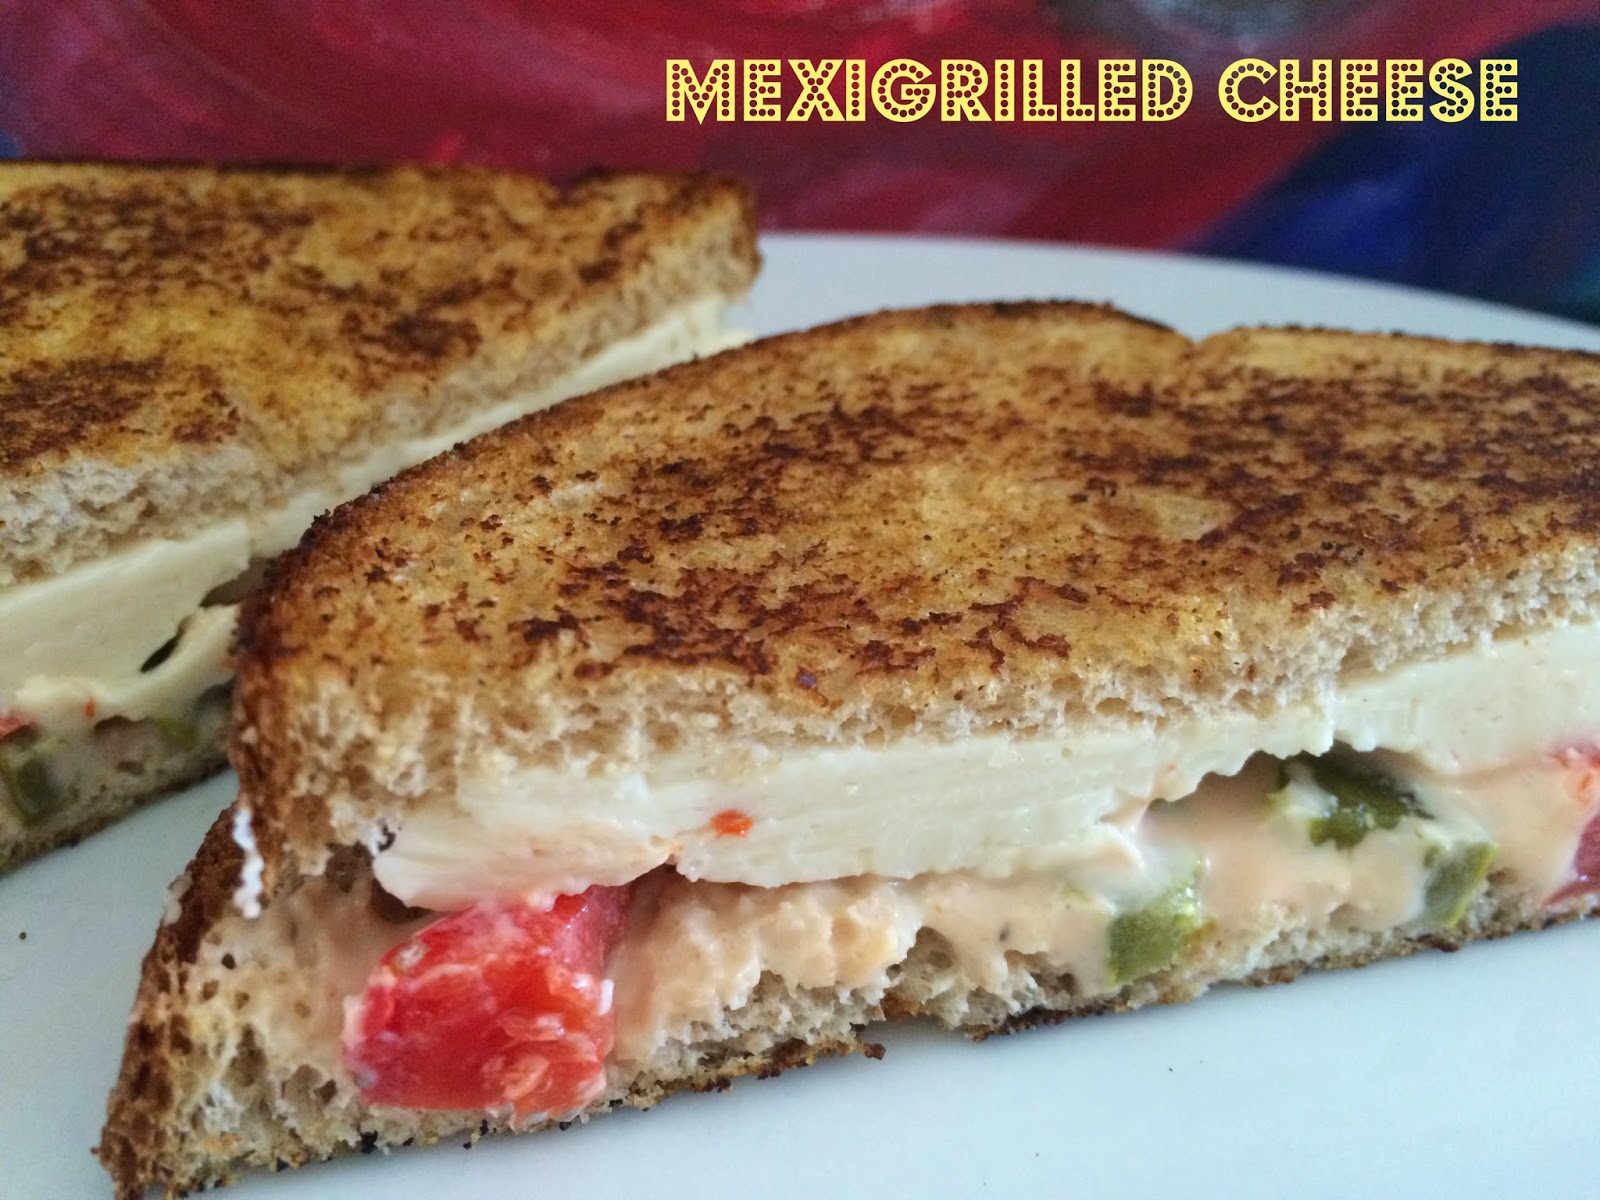 MexiGrilled Cheese